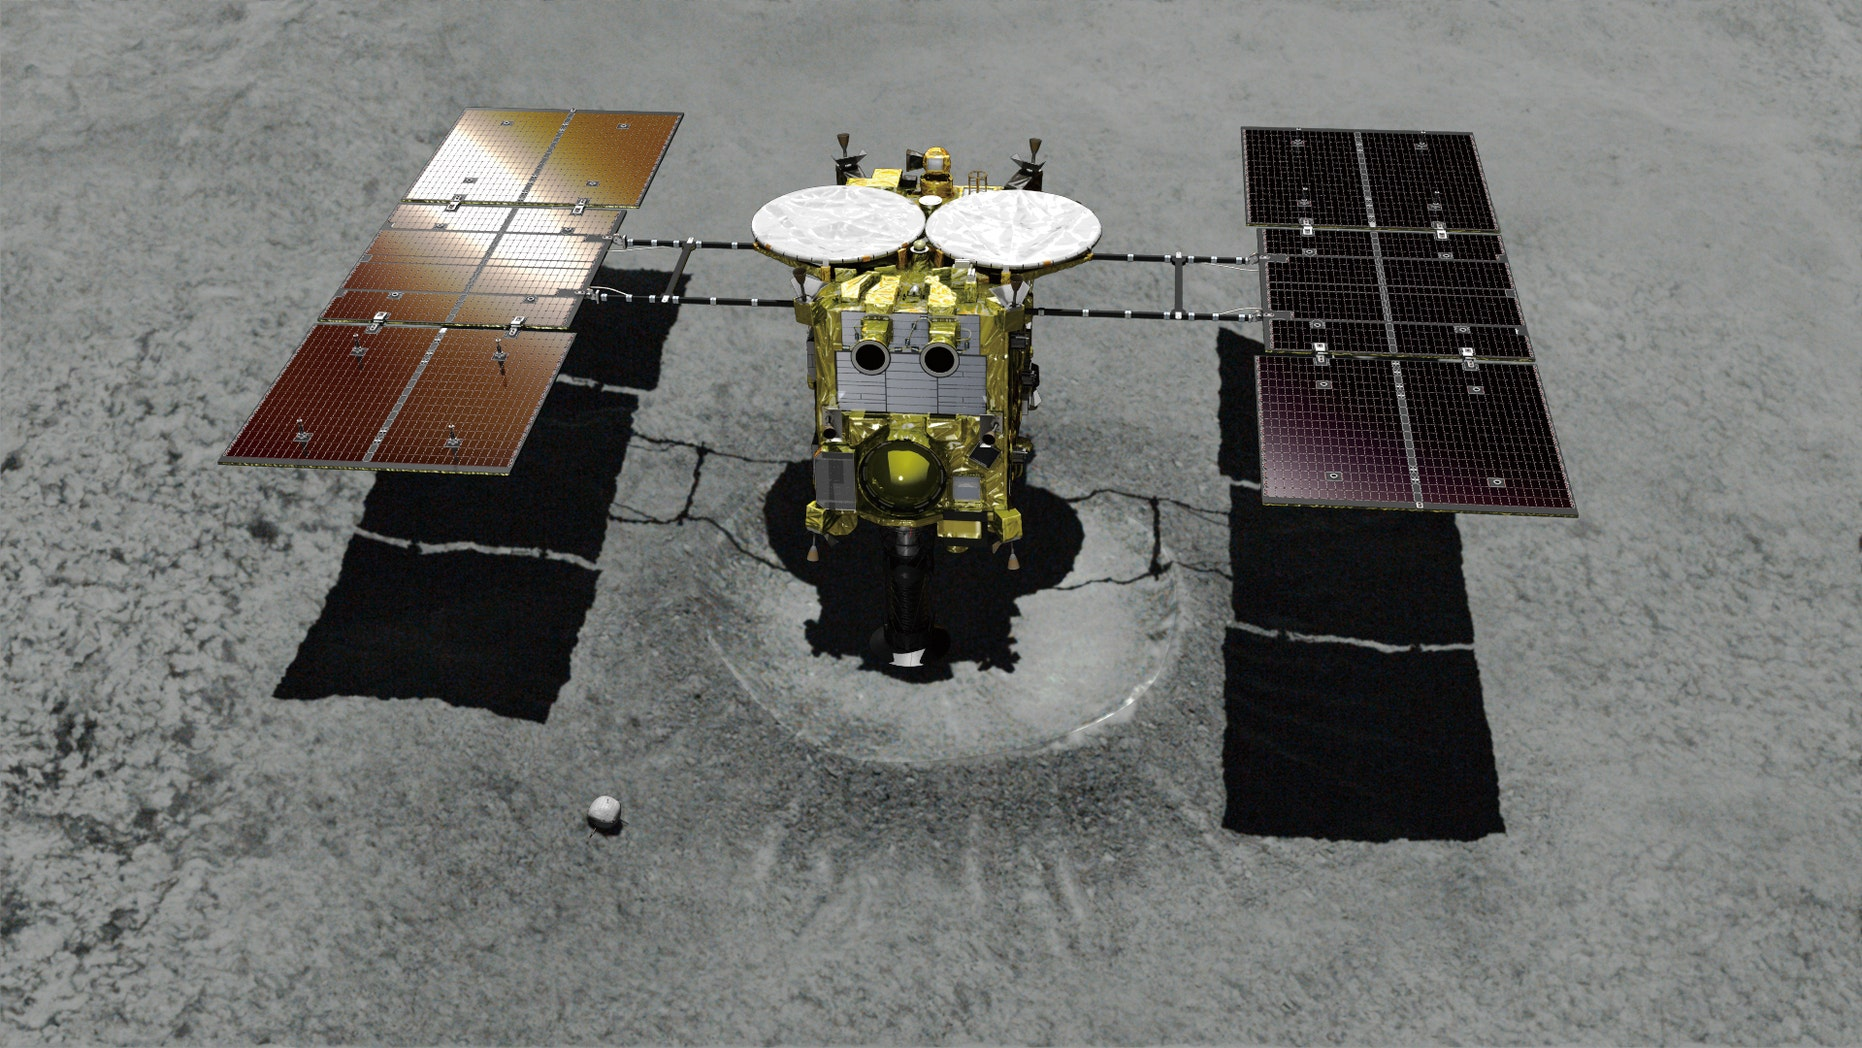 An illustration of the Japanese unmanned spacecraft Hayabusa2 approaching the asteroid Ryugu.